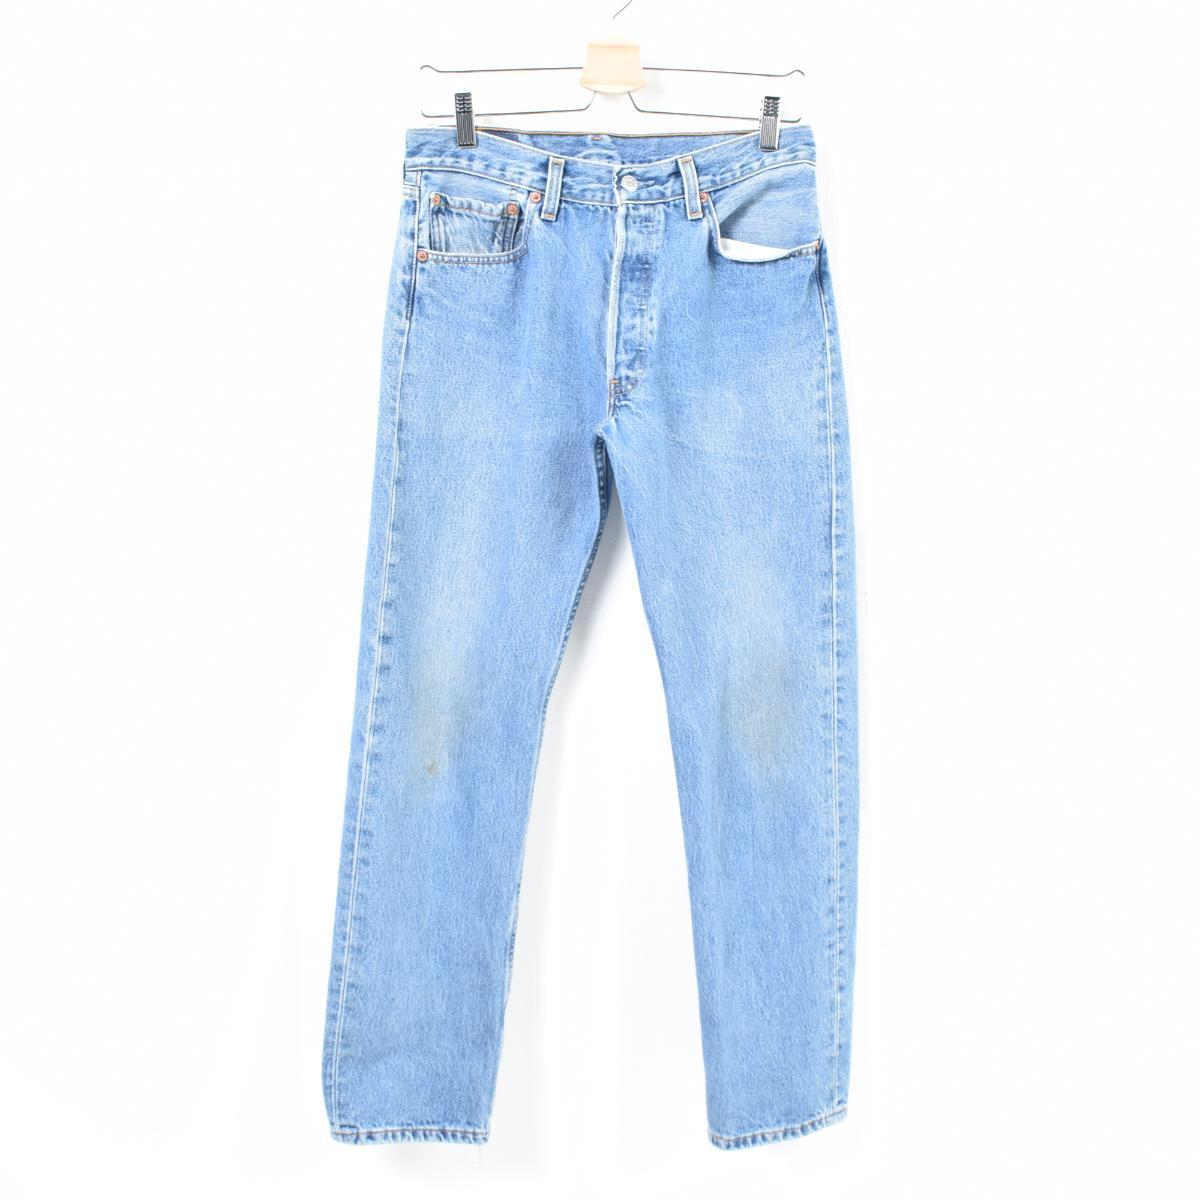 d83d239779a 90s Levis Levi's 501 jeans straight denim underwear men w31 /wan4847 ...